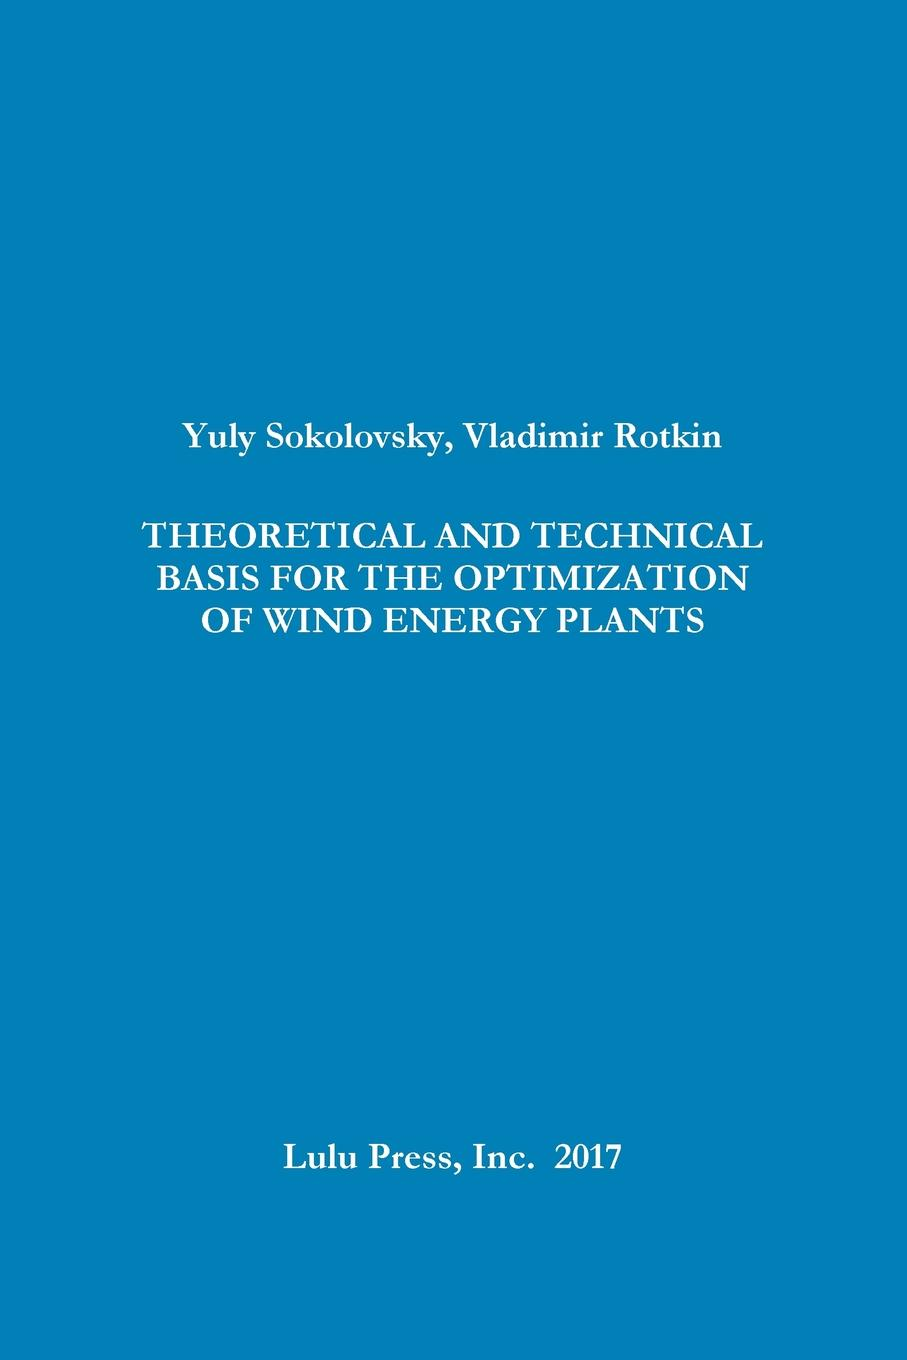 Yuly Sokolovsky, Vladimir Rotkin THEORETICAL AND TECHNICAL BASIS FOR THE OPTIMIZATION OF WIND ENERGY PLANTS andrey ermoshin learn languages easily methods of self regulation for successful learning